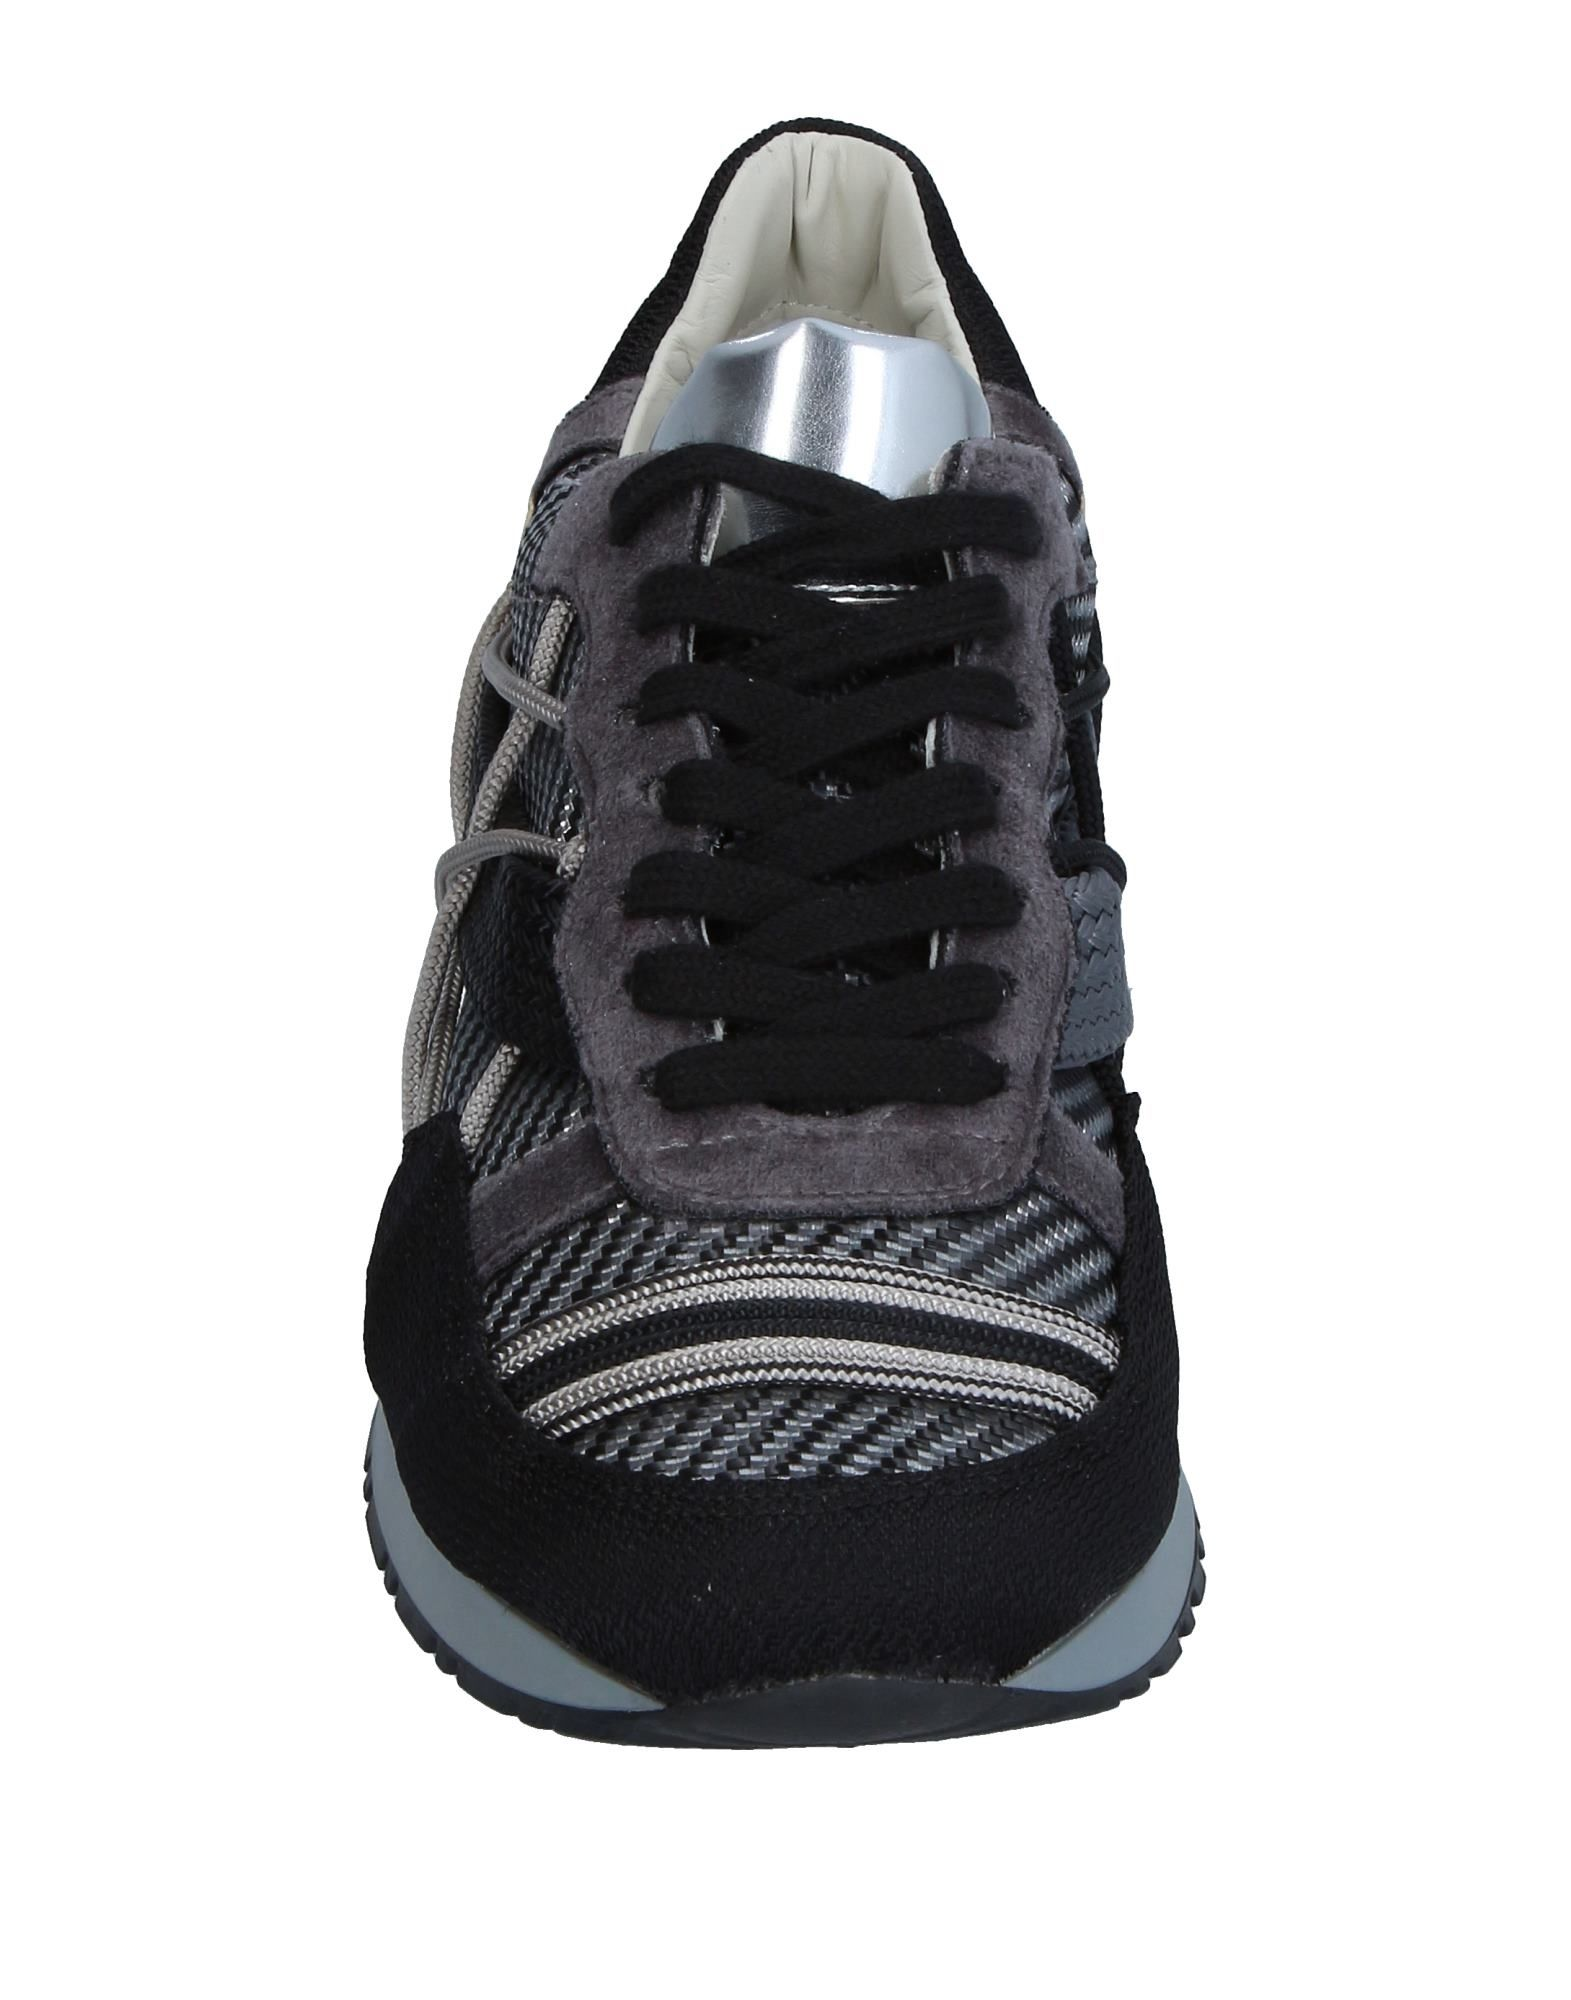 L4k3 Sneakers online - Men L4k3 Sneakers online Sneakers on  Australia - 11296921AG 126a8b